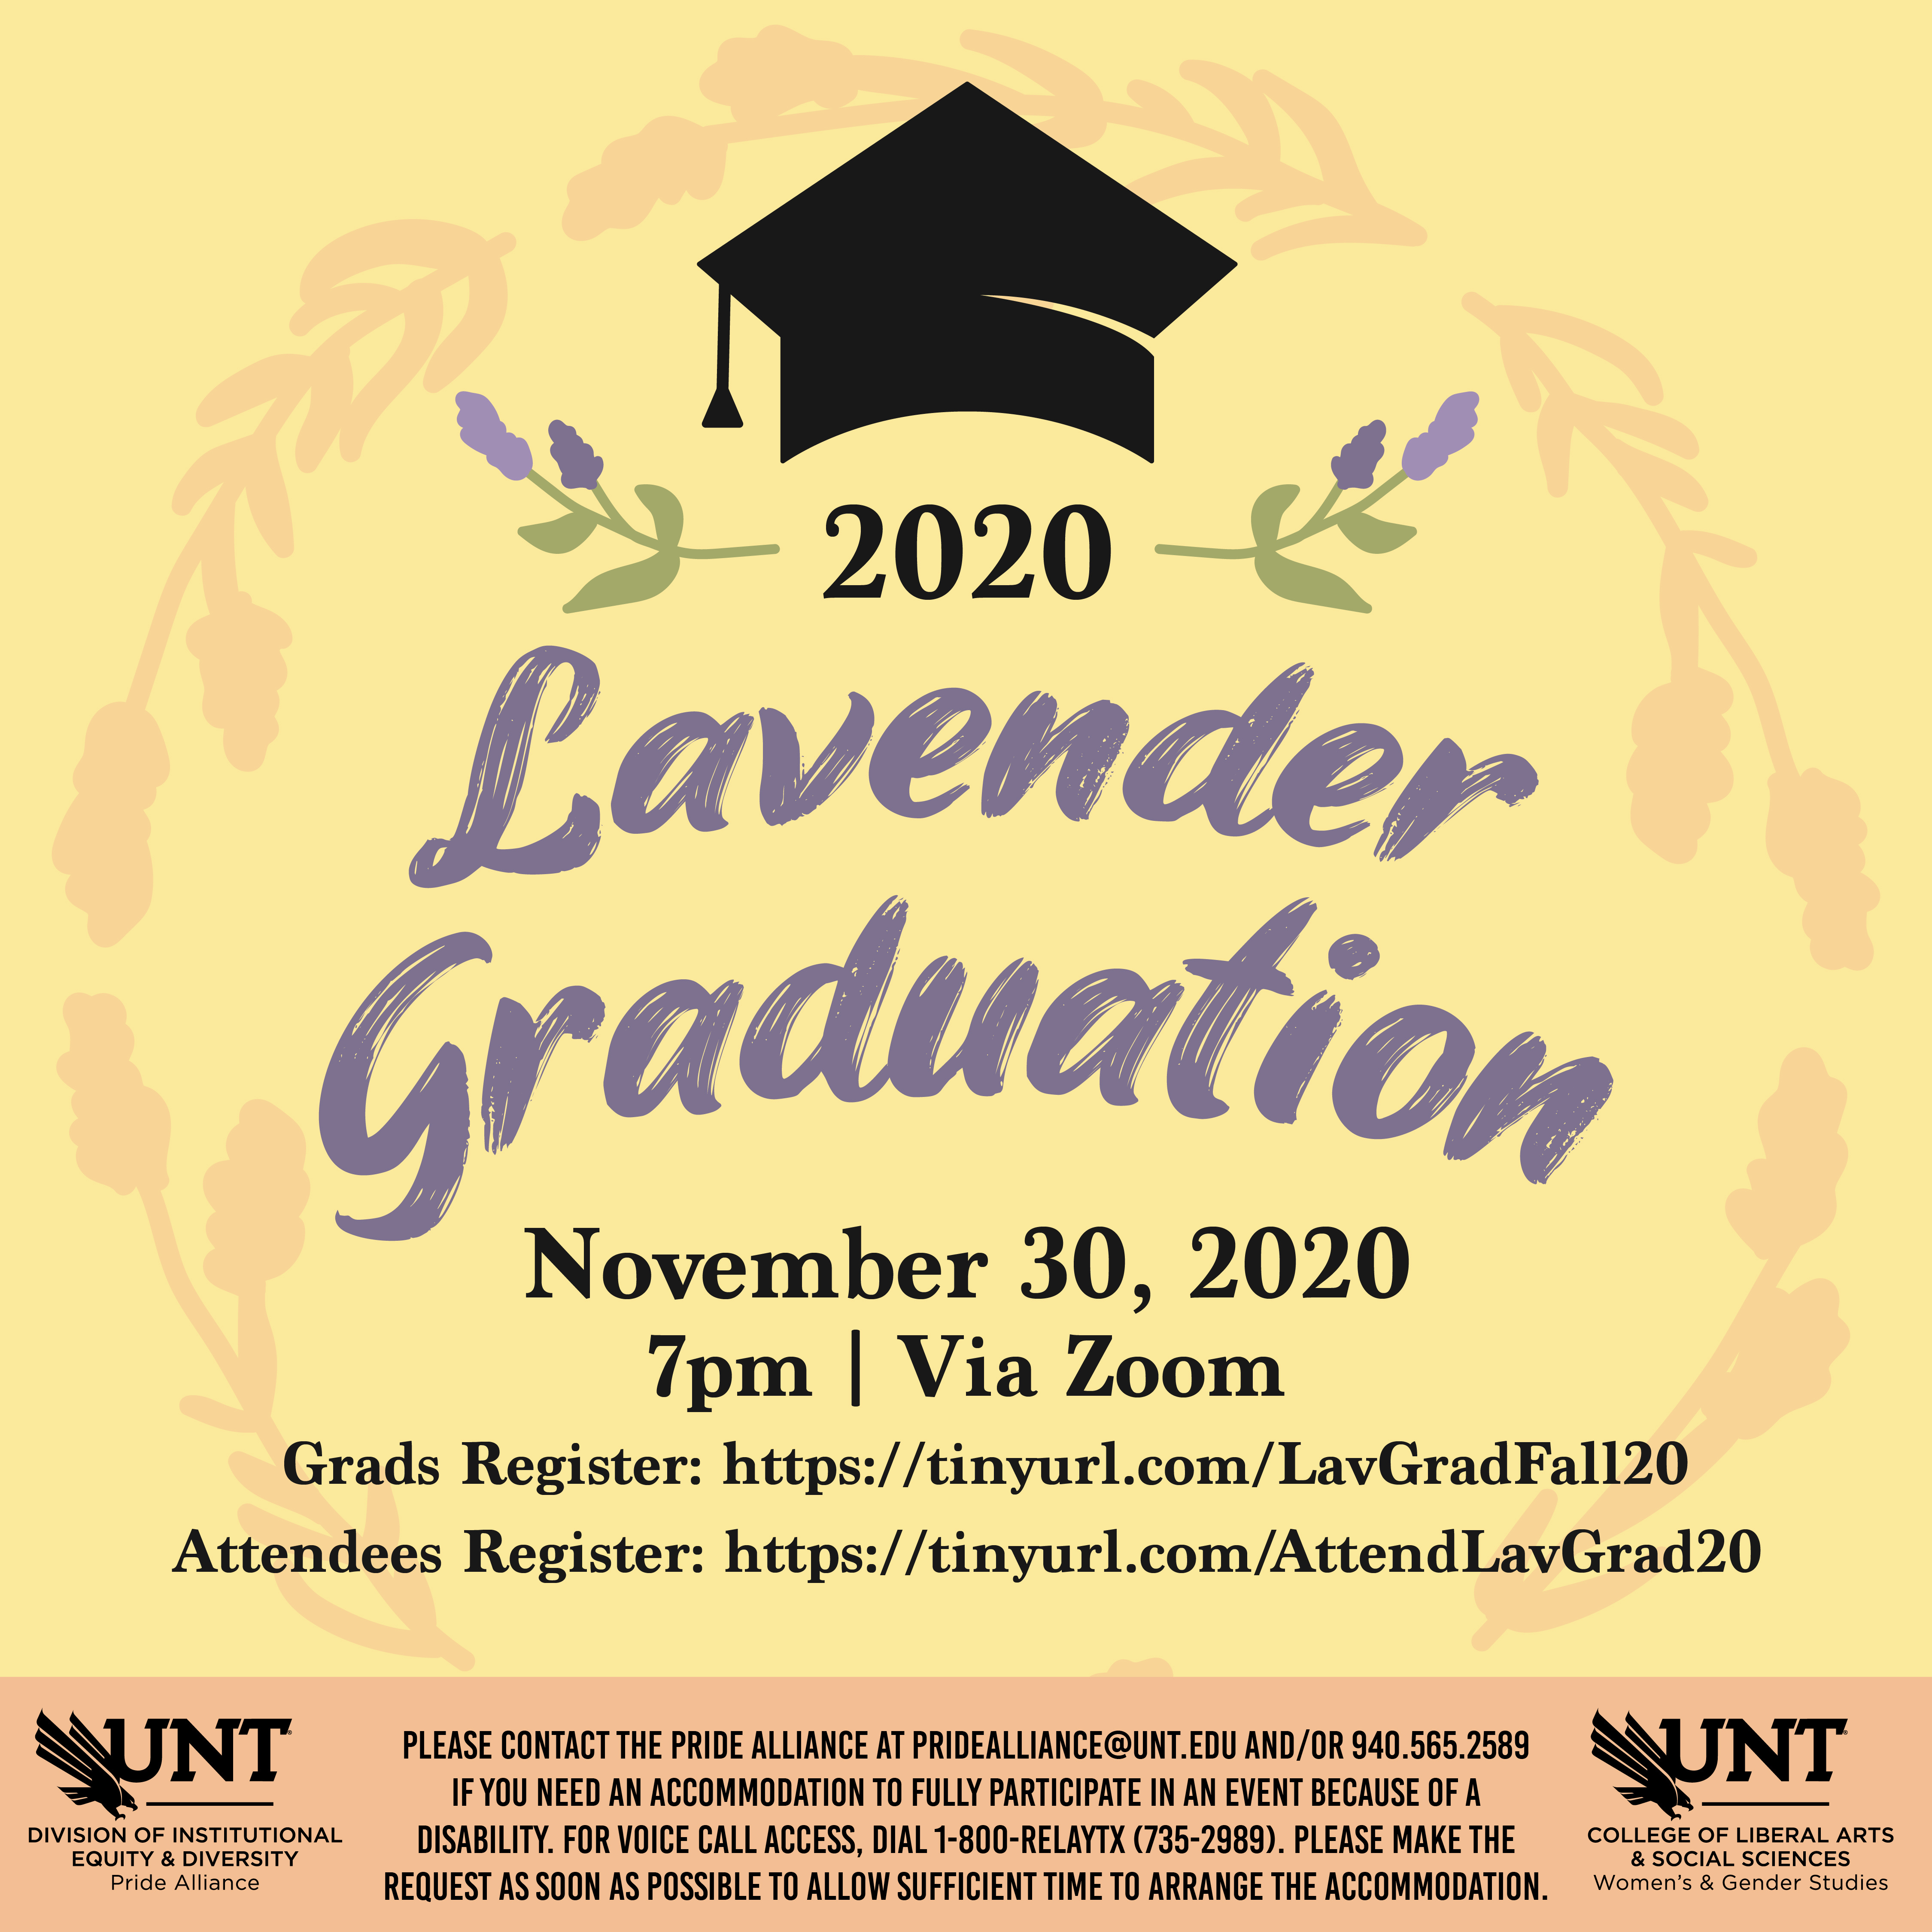 A yellow background with images of lavender plants and a graduation cap. text reads - 2020 lavender graduation, November 30, 7:00pm, via Zoom. Grads register at http://tinyurl.com/lavgradfall20. Attendees register at http://tinyurl.com/attendlavgrad20. please contact the pride Alliance at pridealliance@unt.edu and/or 940.565.2589 if you need an accommodation to fully participate in an event because of a disability. for voice access, dial 1-800-relaytx (735-2989). Please make the request as soon as possible to allow sufficient time to arrange the accommodation. sponsored by the pride alliance and women's and gender studies.